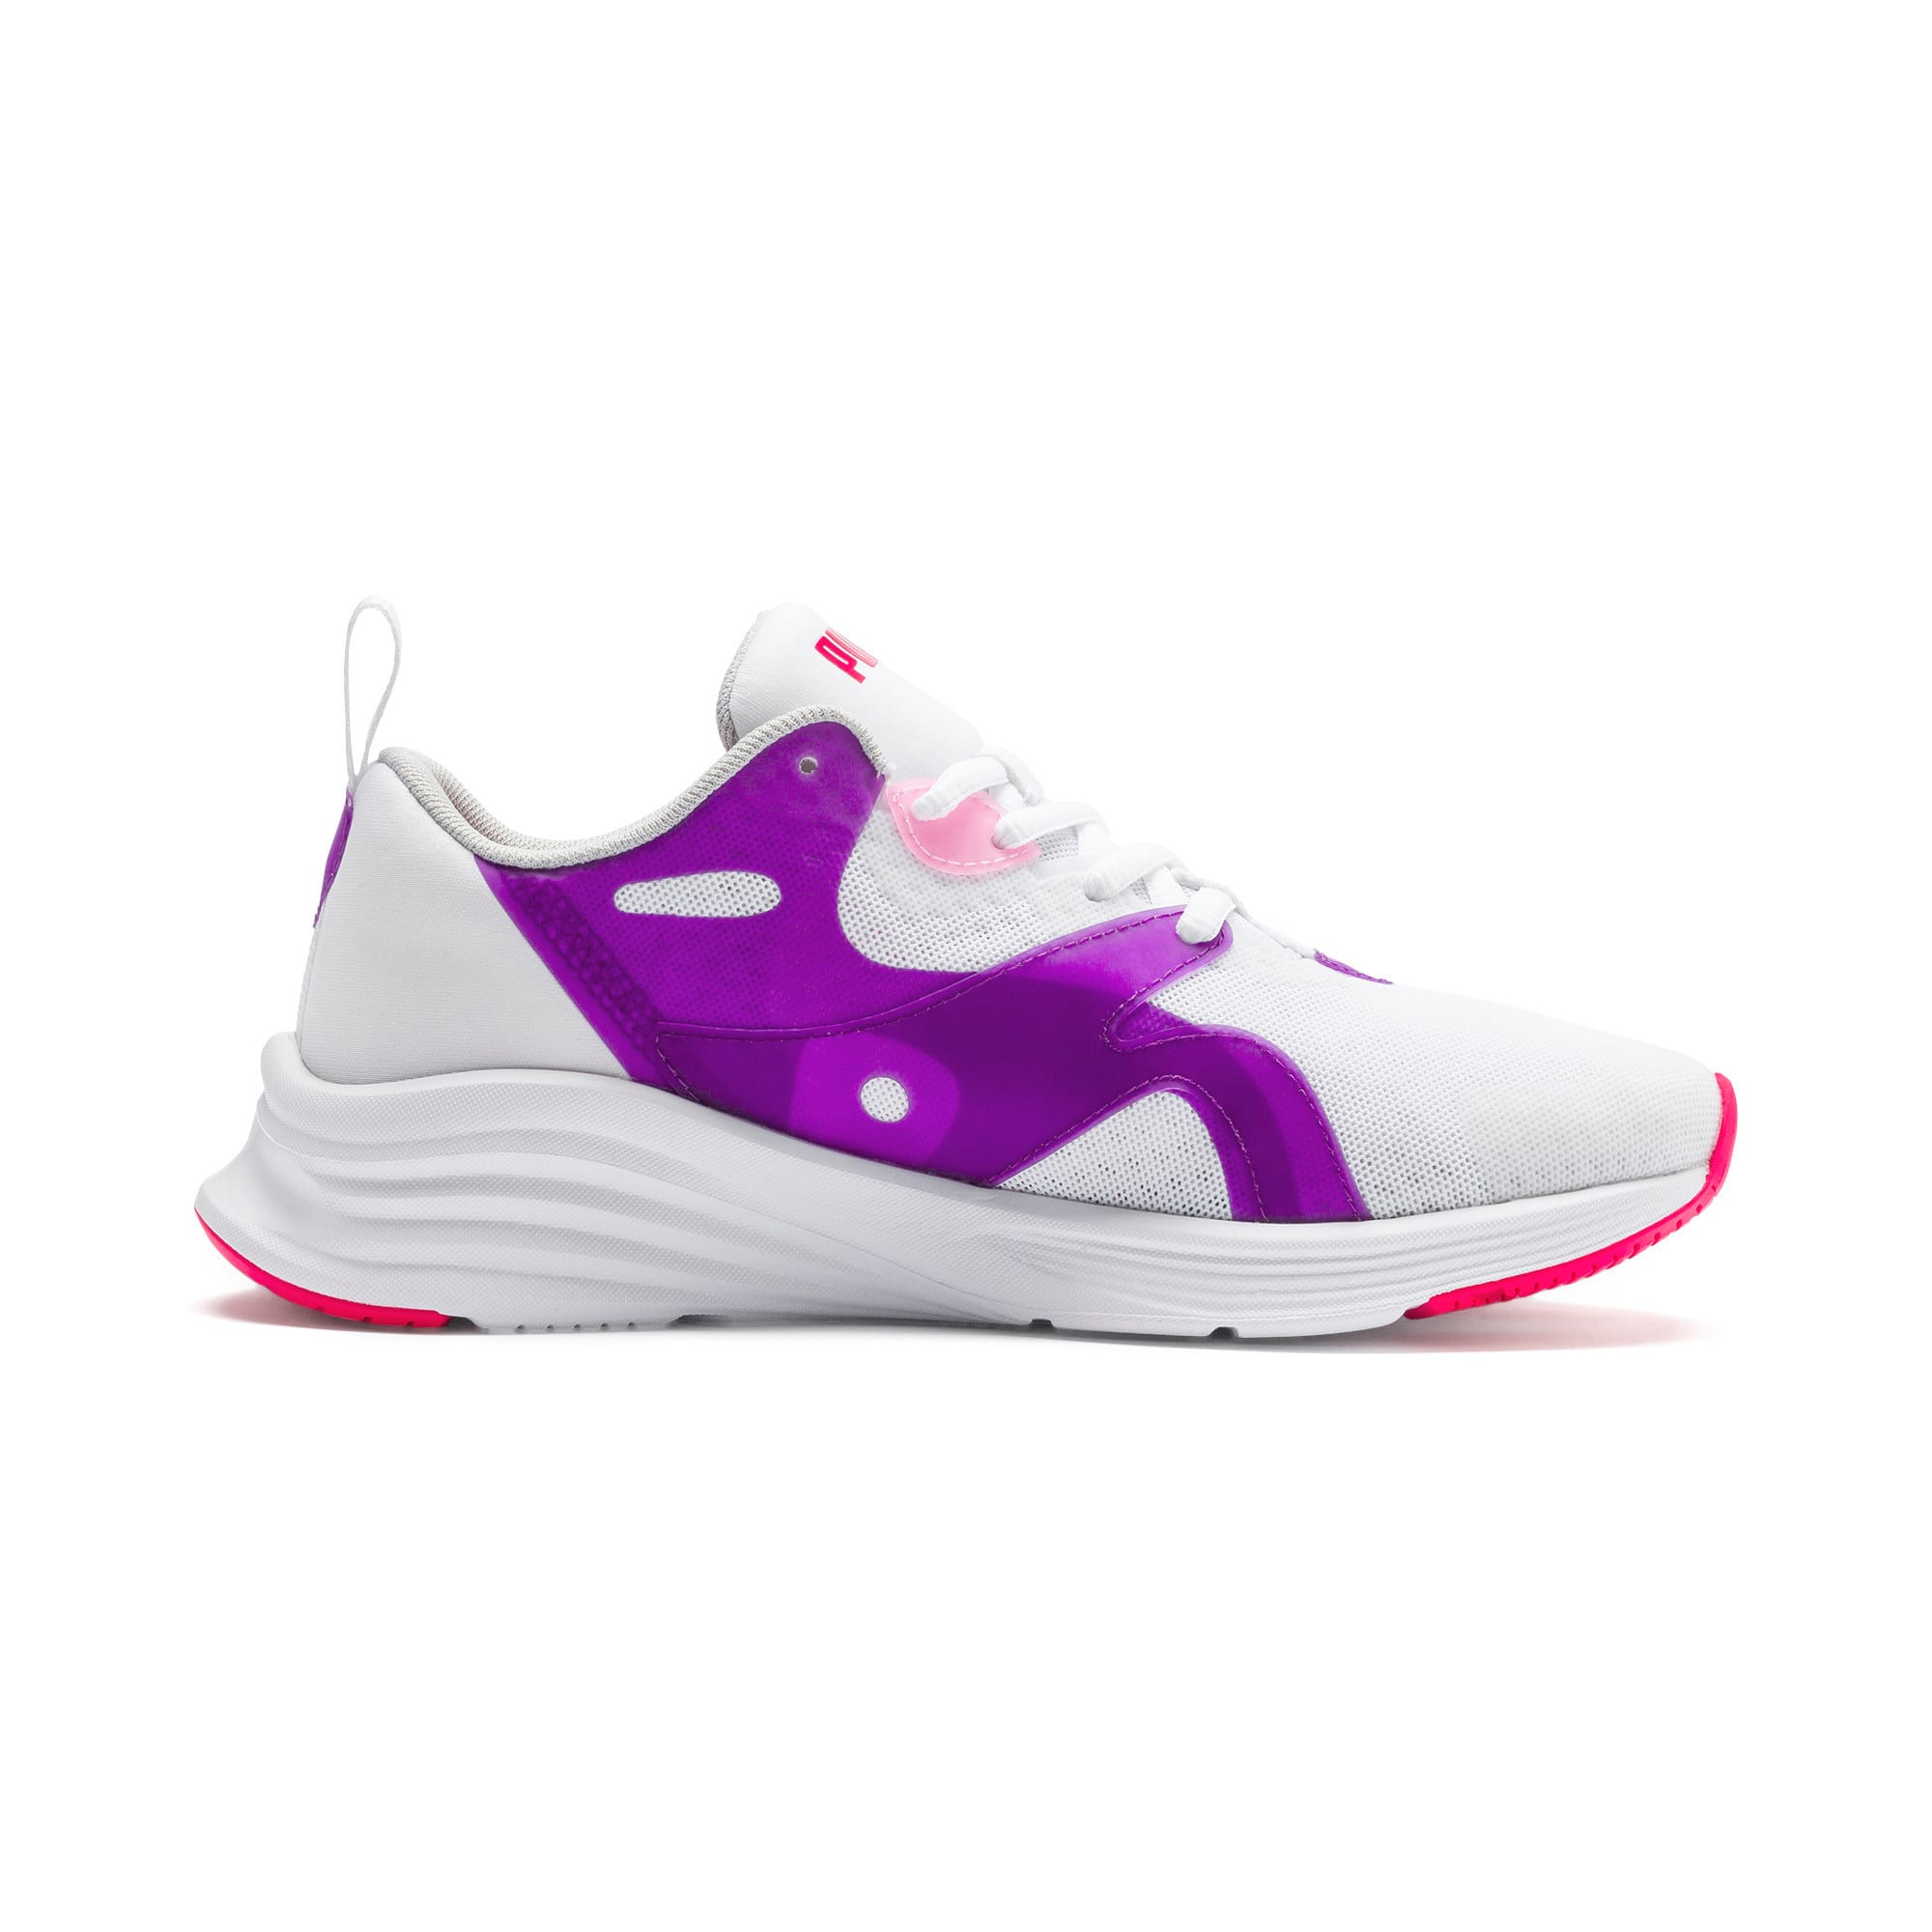 Thumbnail 5 of HYBRID Fuego Youth Trainers, Puma White-Royal Lilac, medium-IND